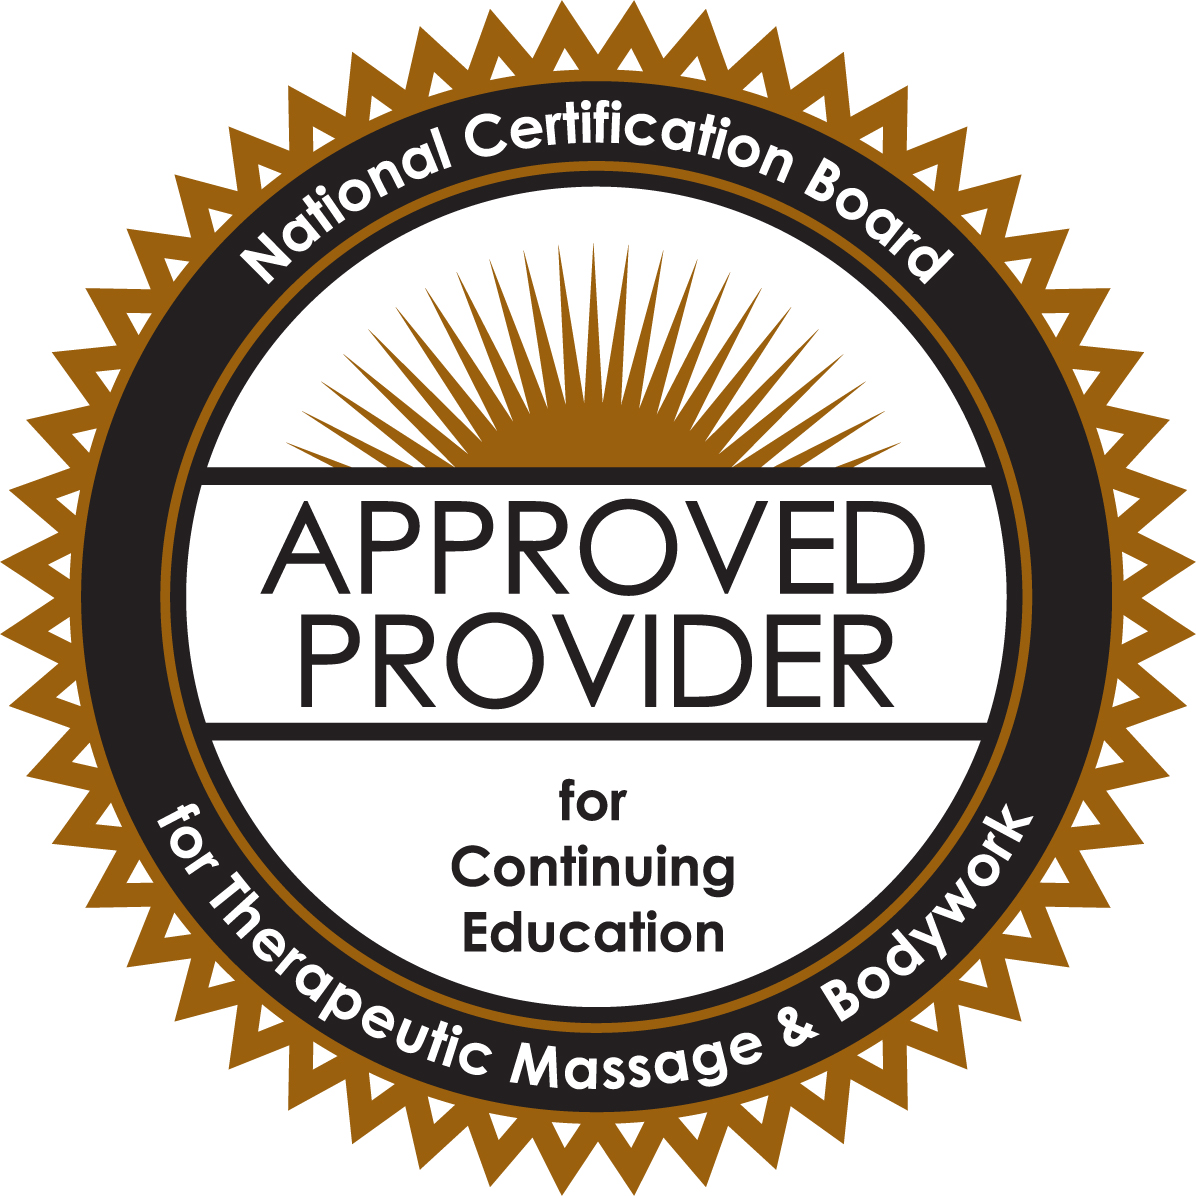 Continuing Education for Massage Therapists